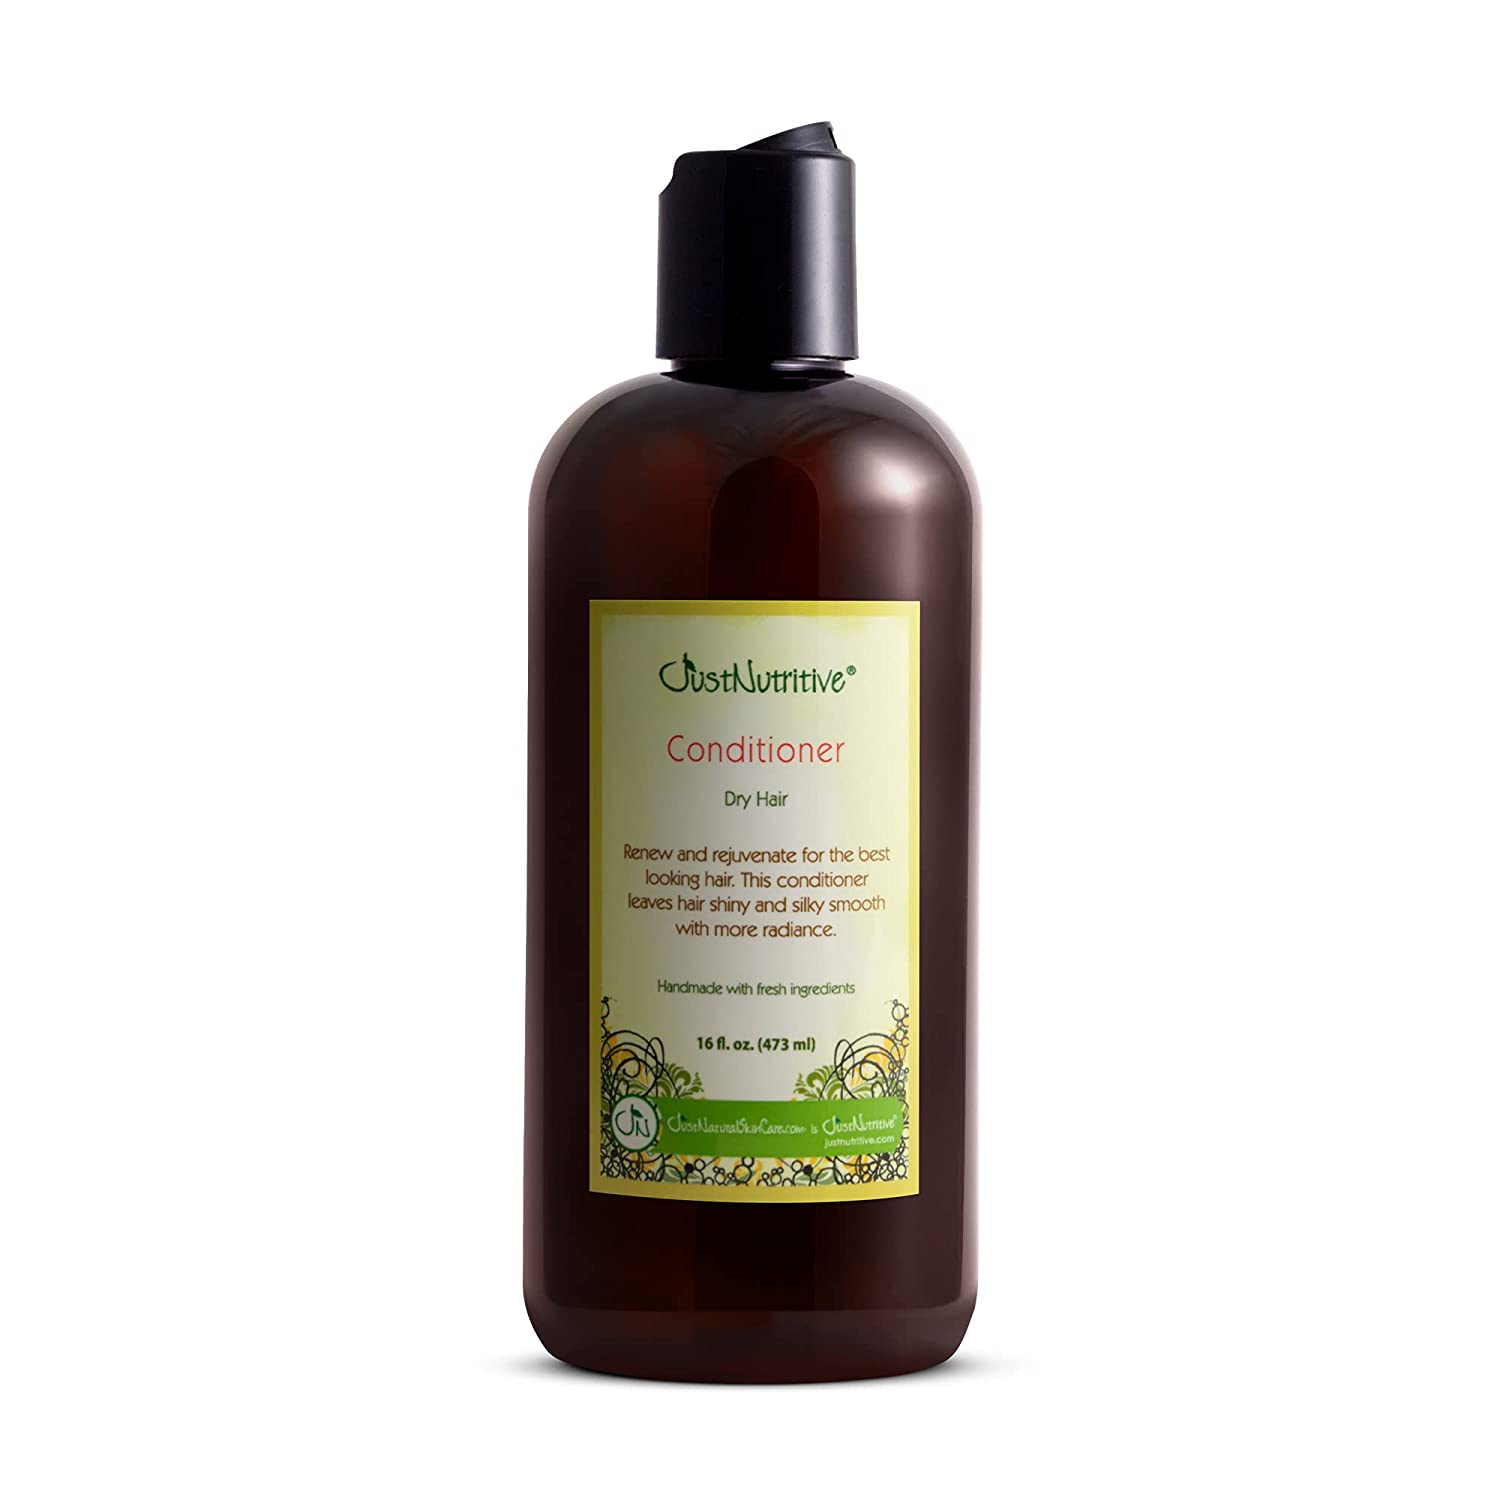 Dry Hair Conditioner Best Restore Max Classic 81% OFF Ga to